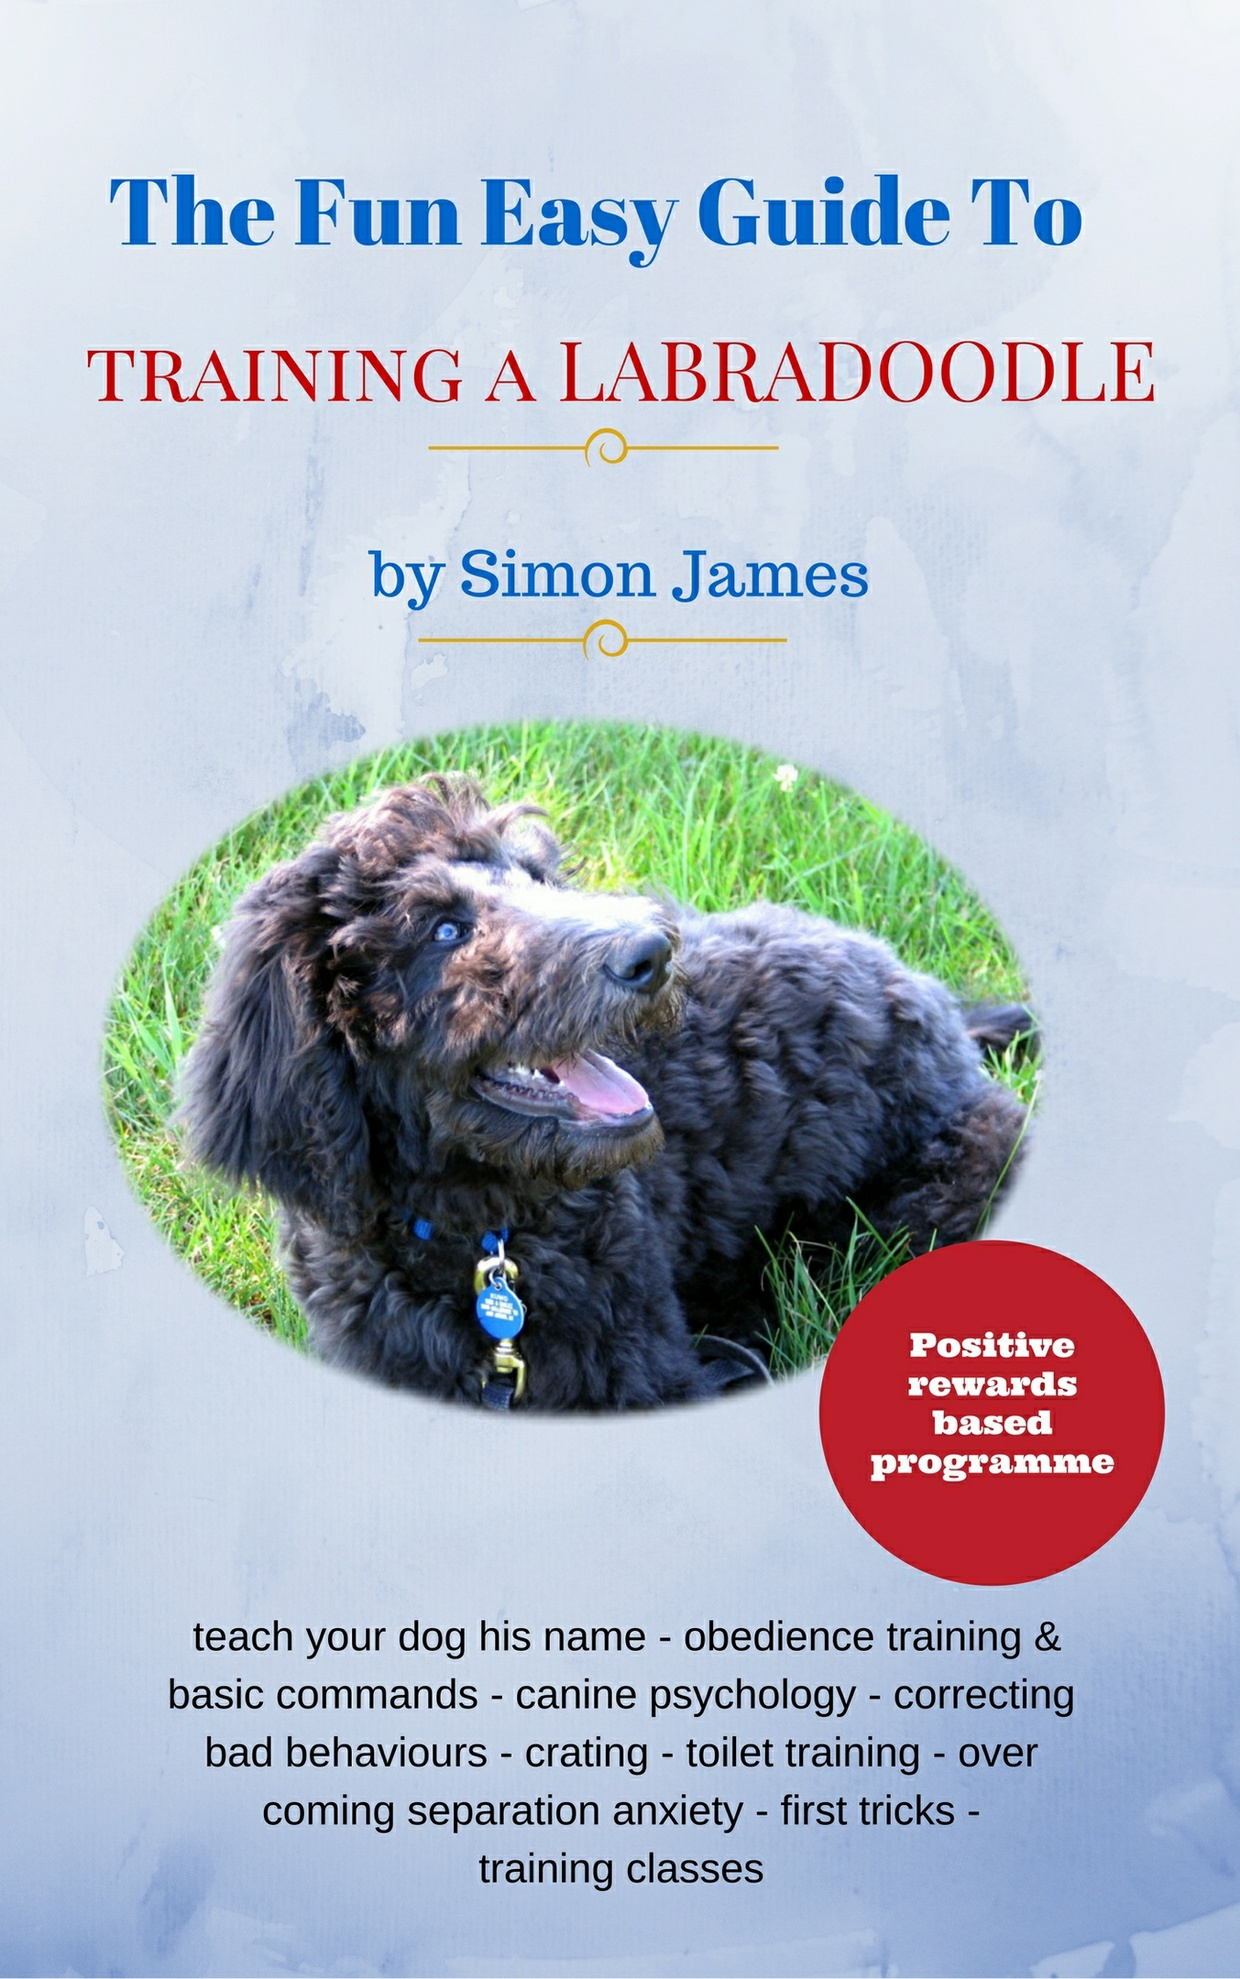 The Fun Easy Guide To Training Your Labradoodle